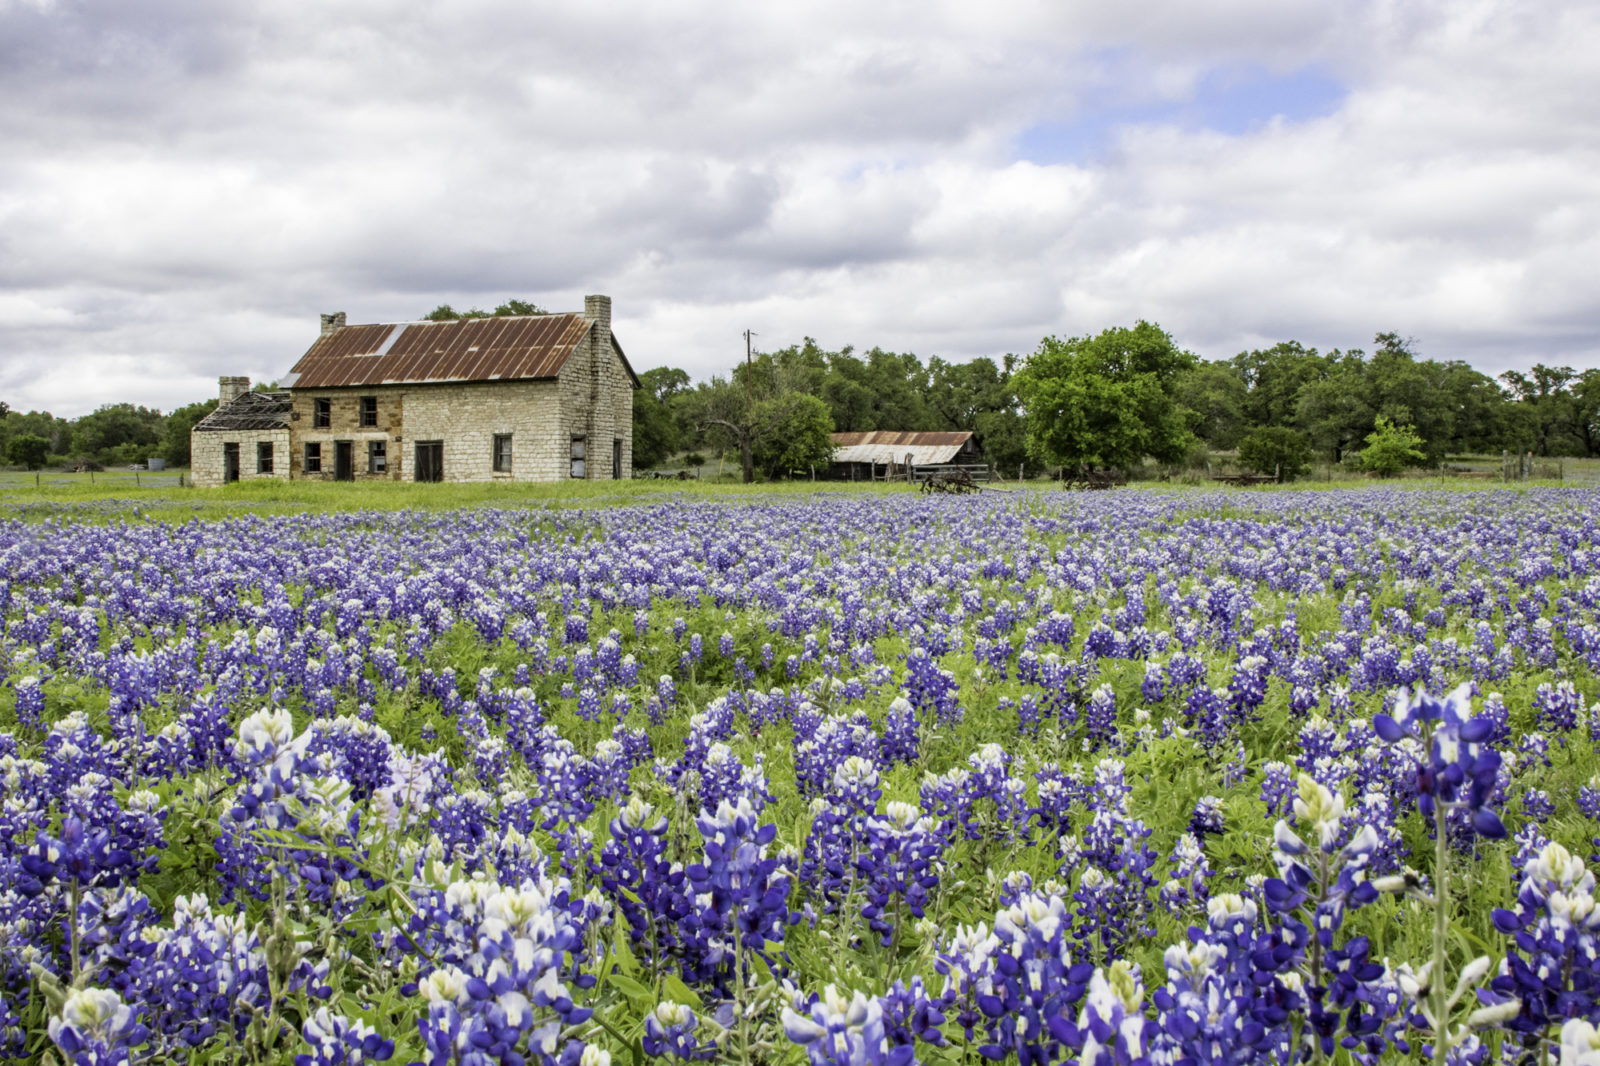 Old stone house surrounded by Texas Bluebonnet wildflowers